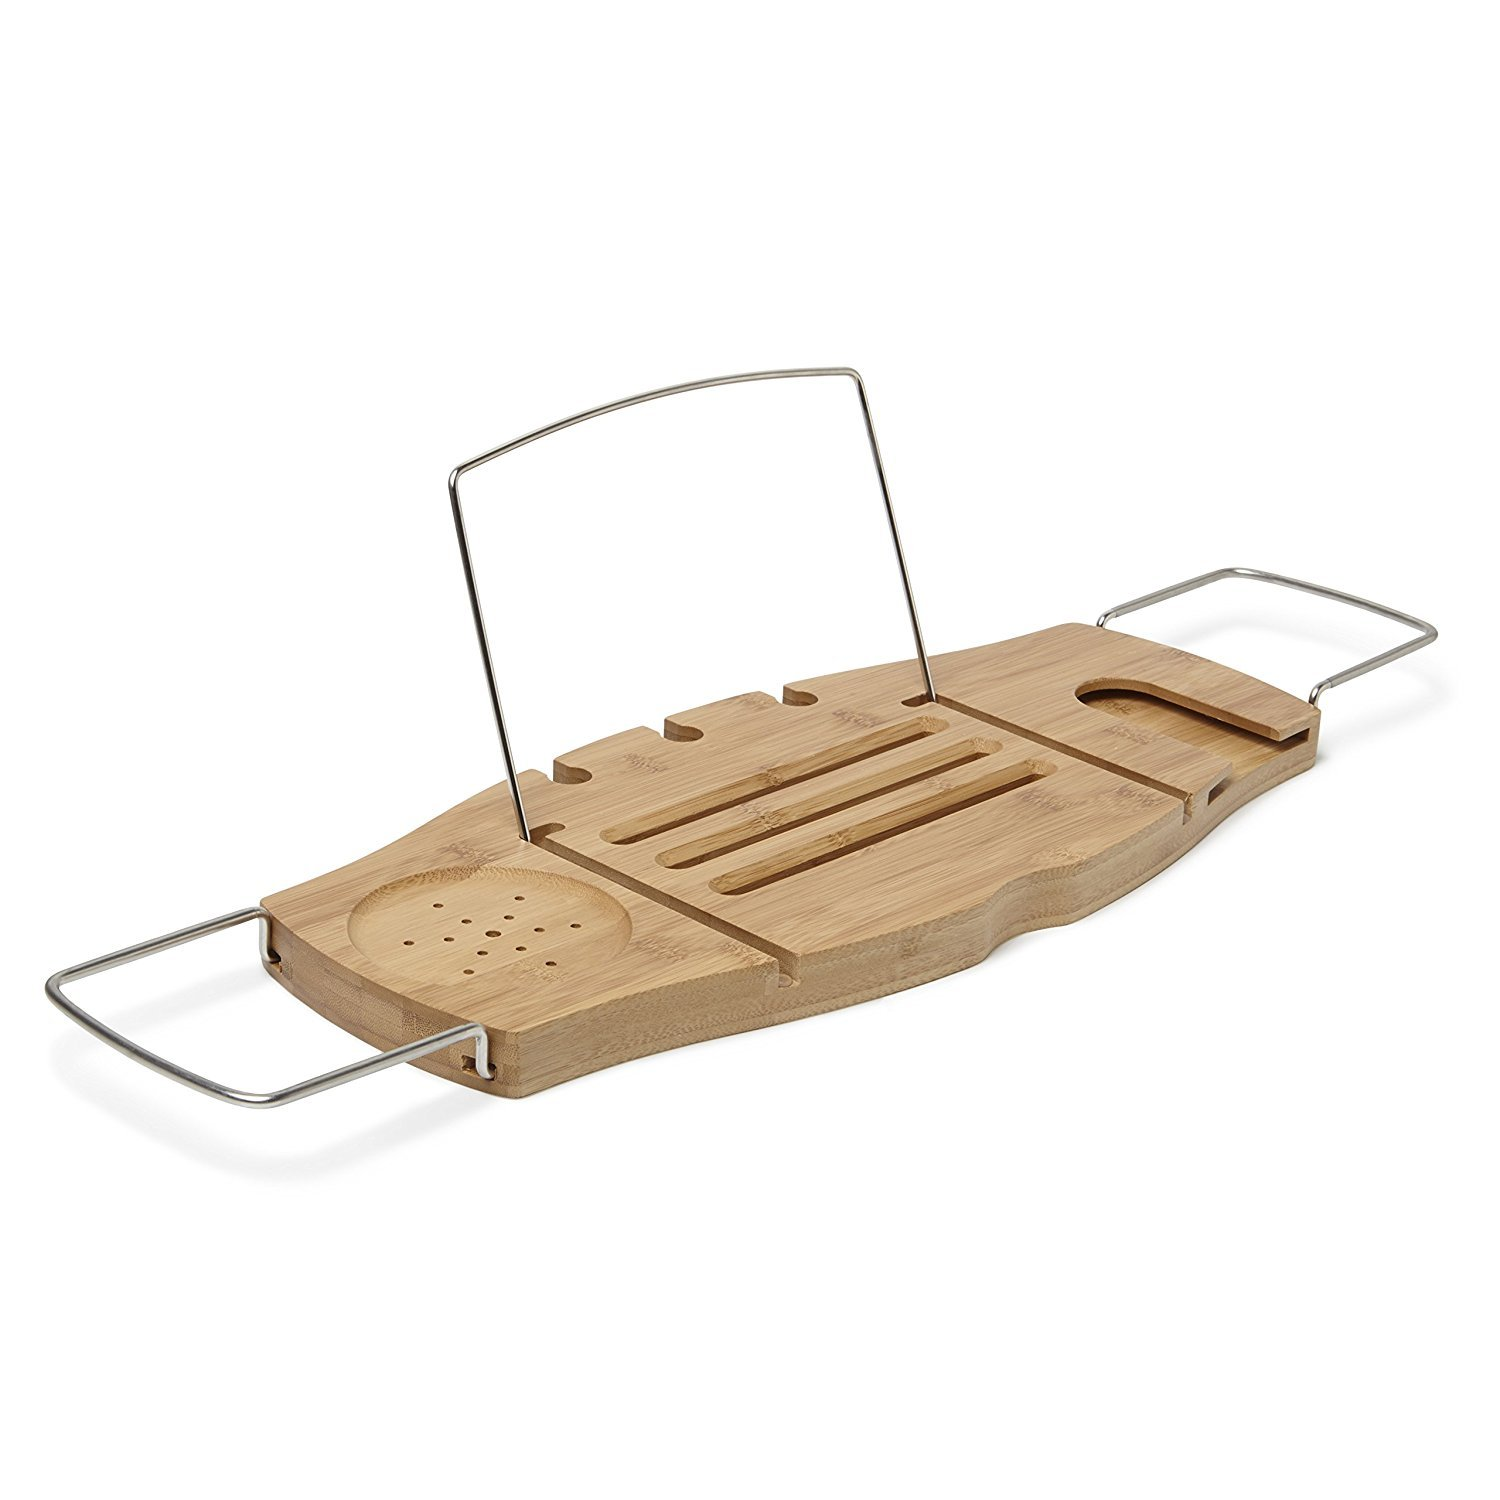 OrganizerLife Bamboo Bathtub Caddy Wood Tray Table with Non Slip Extending Sides | Wine Glass Holder